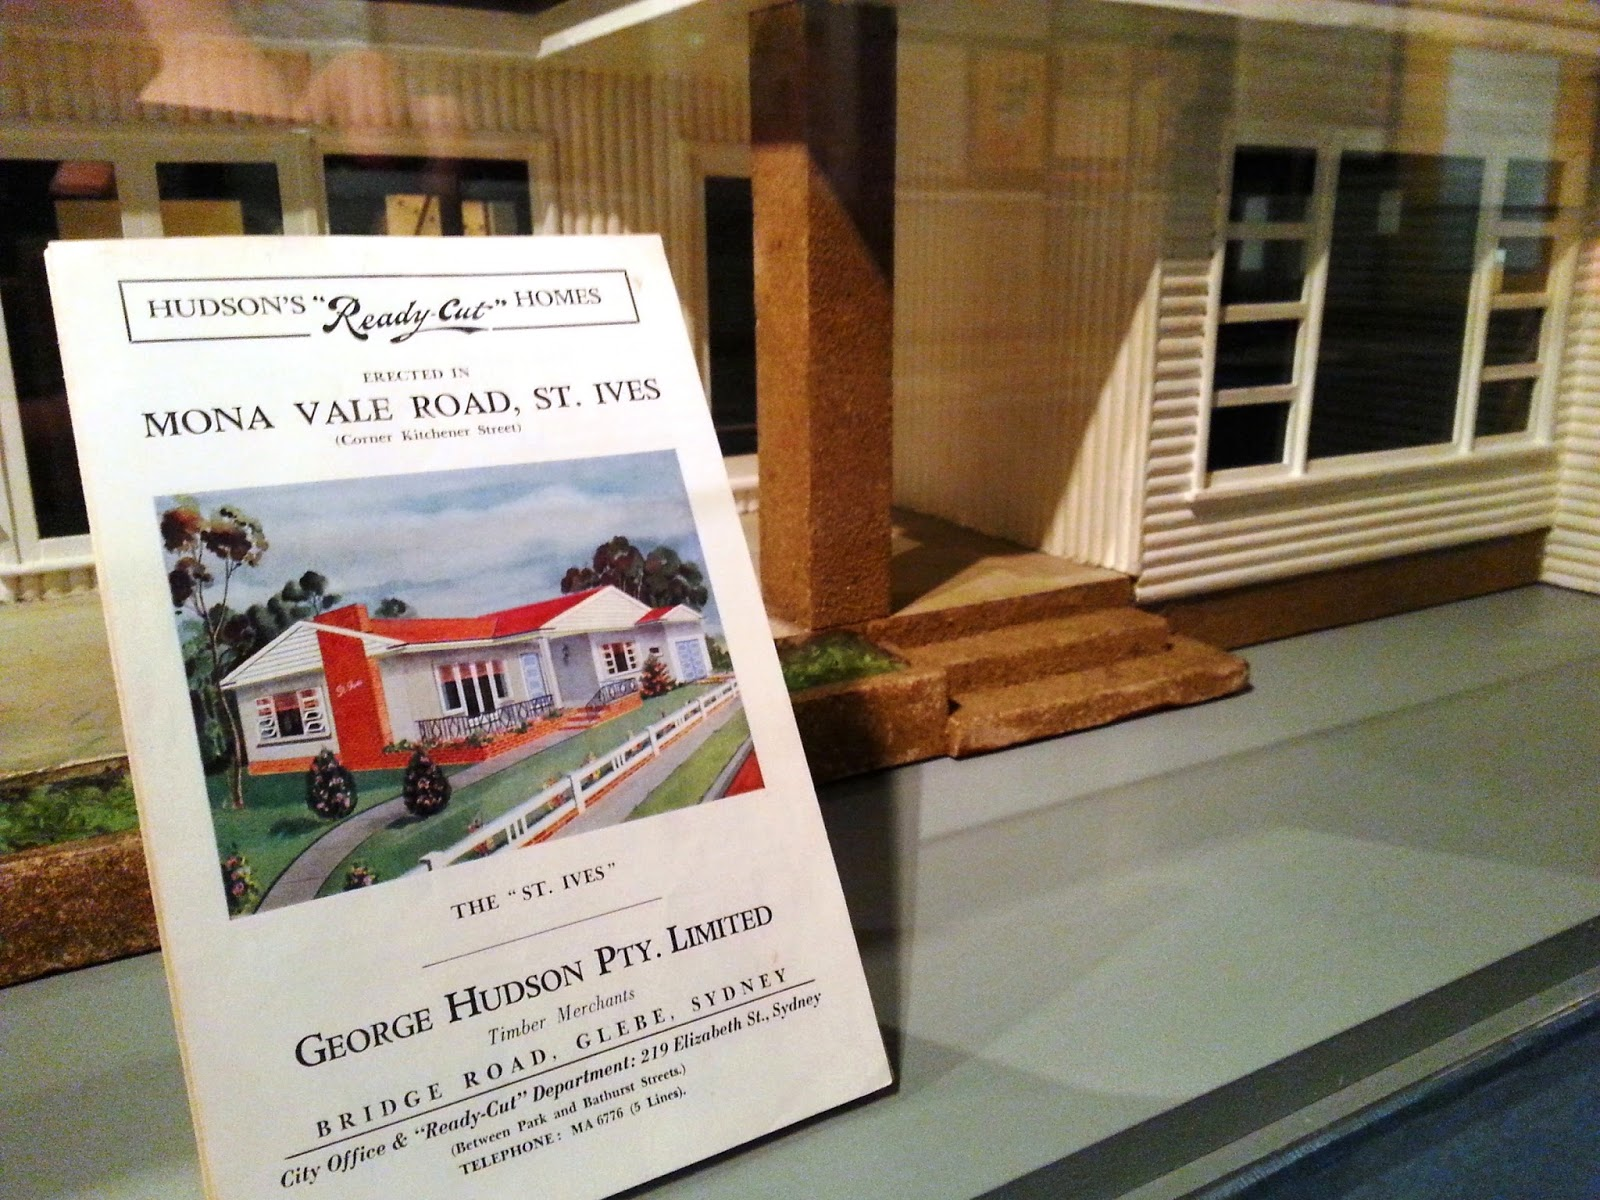 Model of Hudson's St Ives Ready-cut home, and accompanying sales brochure.